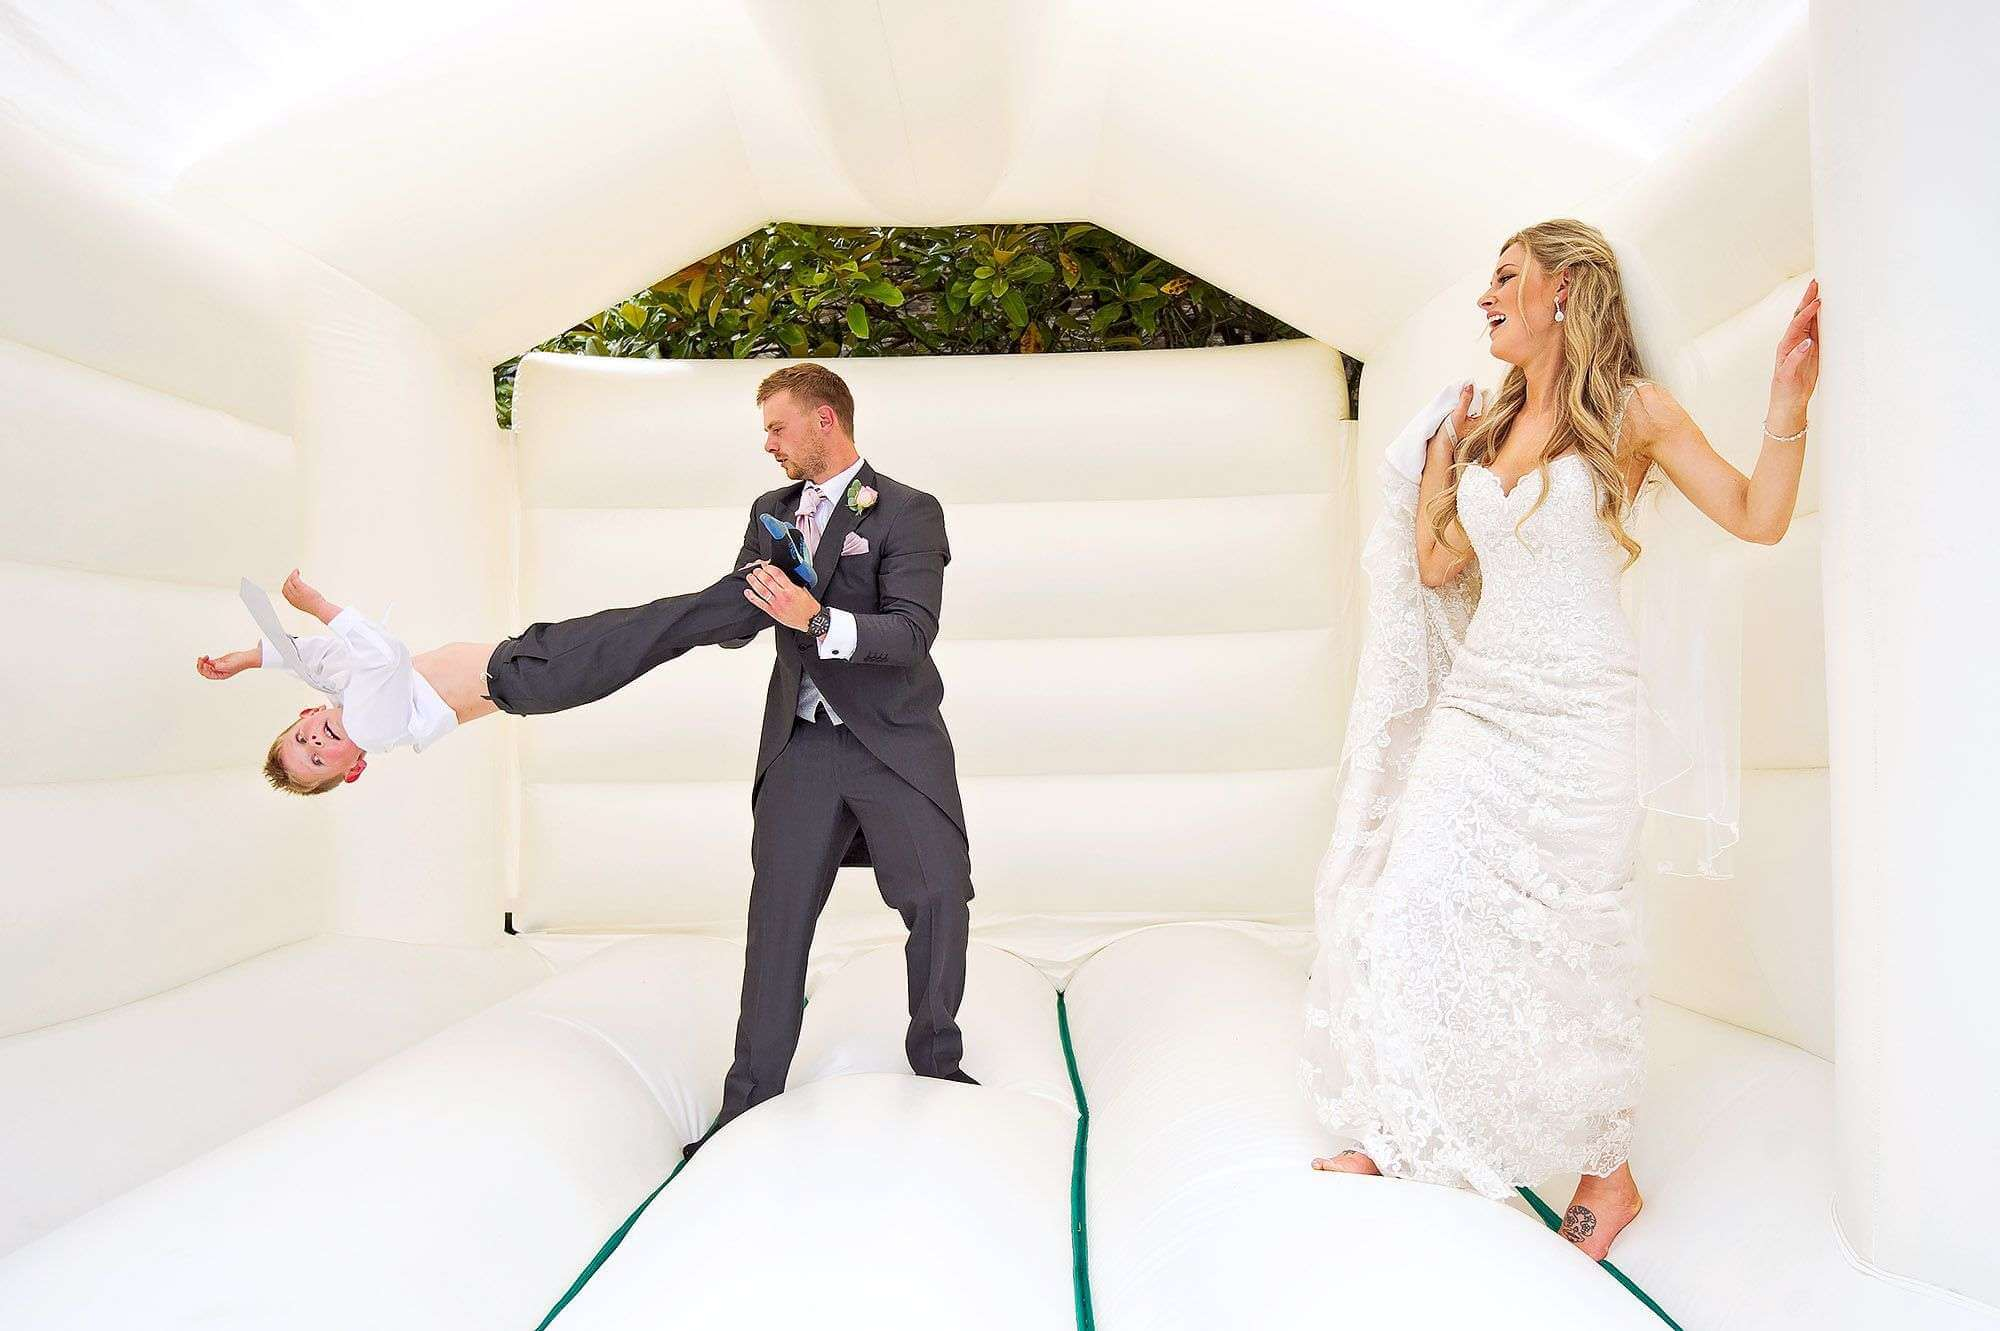 Fun on a bouncy castle on wedding day